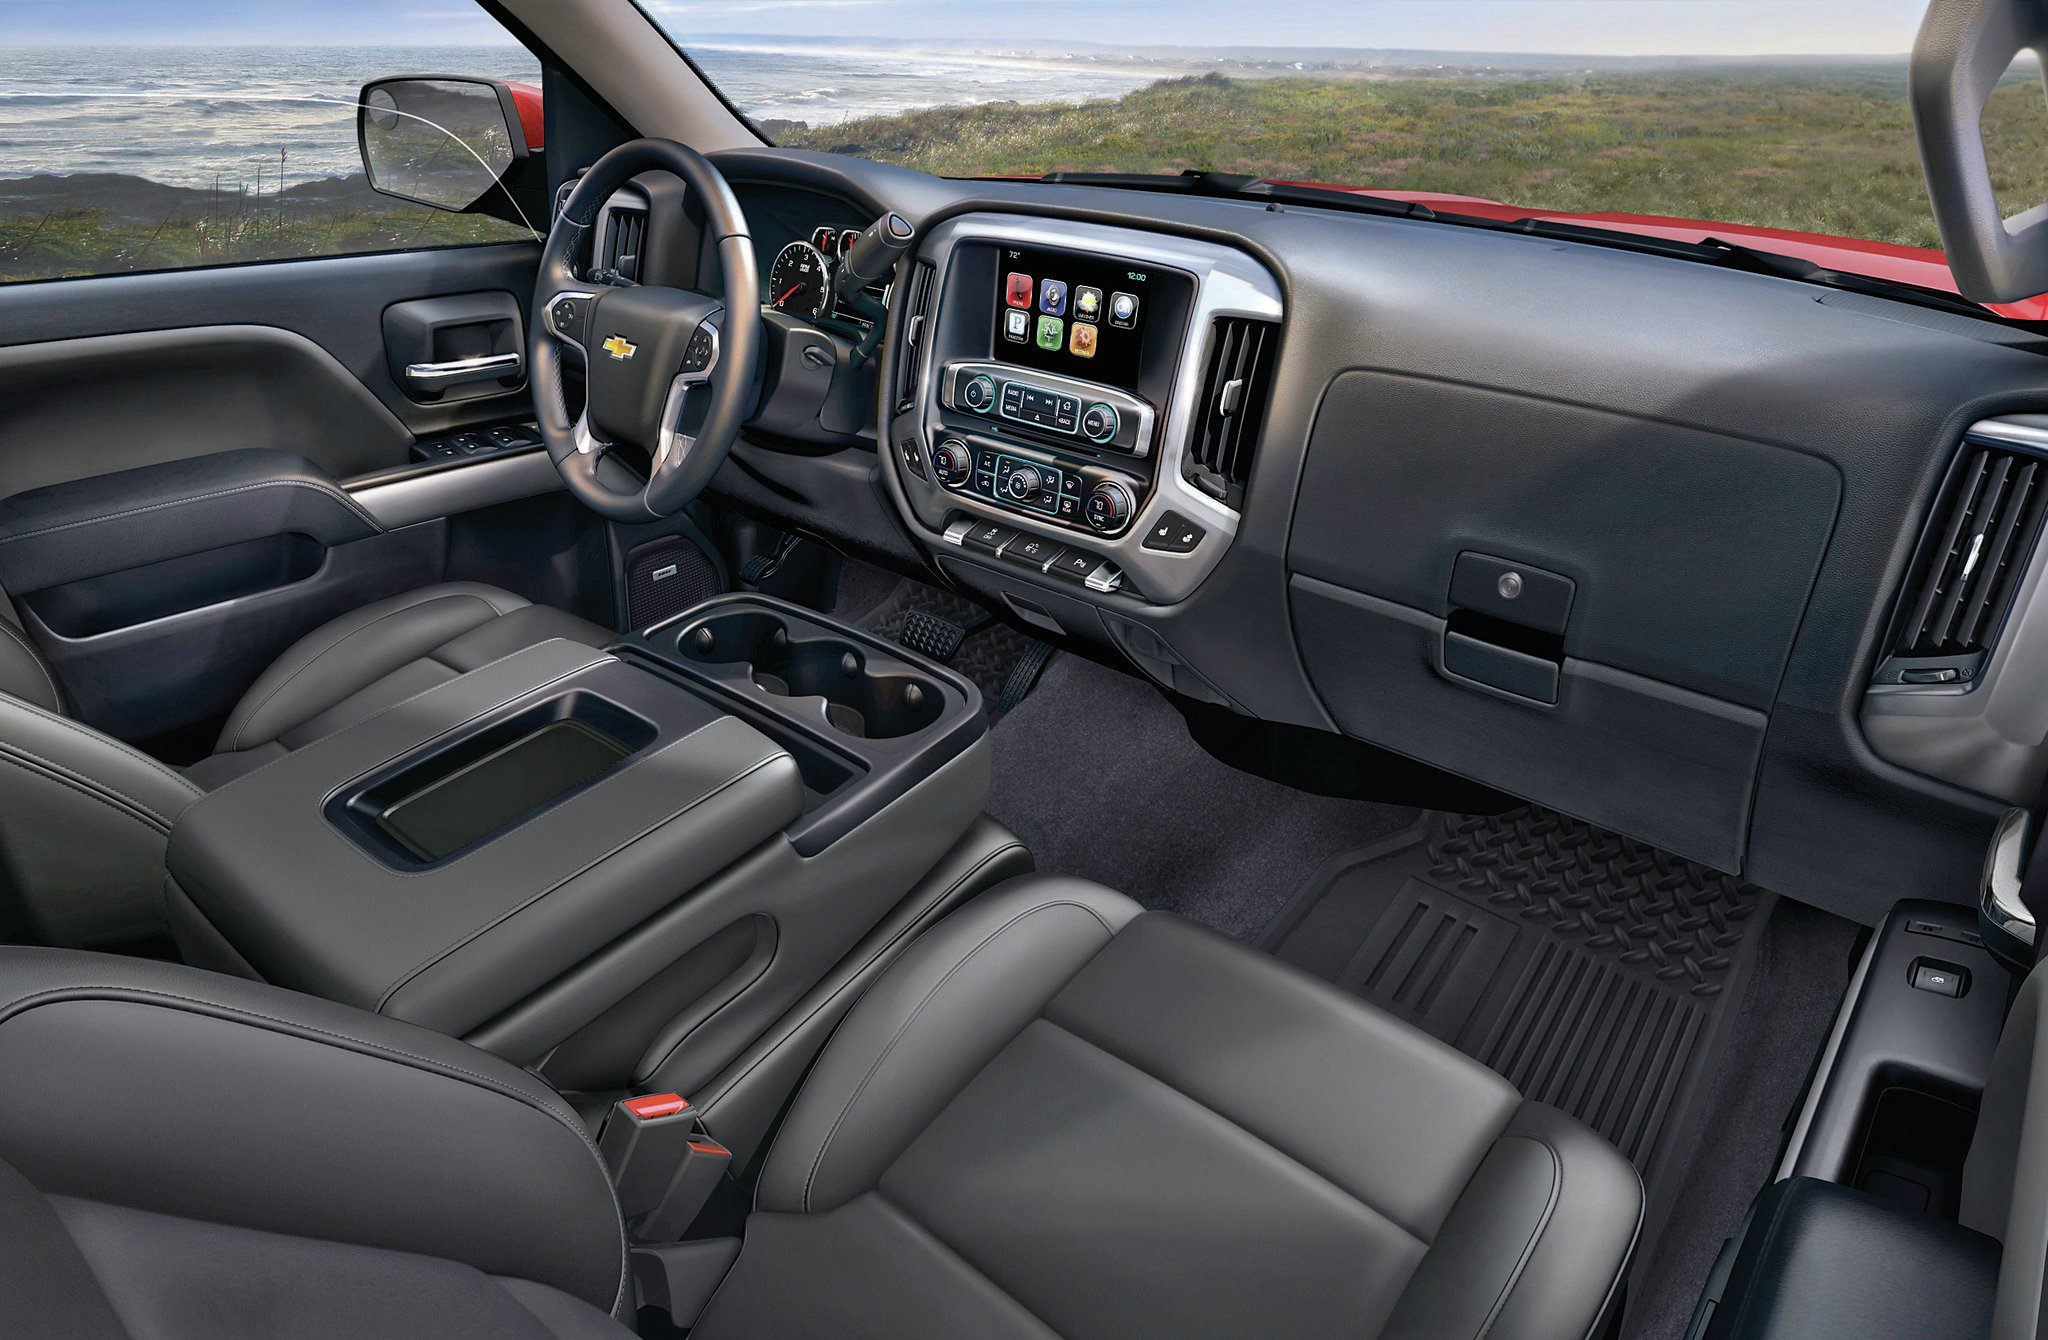 The driver's compartment is nothing short of luxurious. The leather seats are heated and air conditioned, the navigation and stereo are top notch, and the truck is full of amenities.